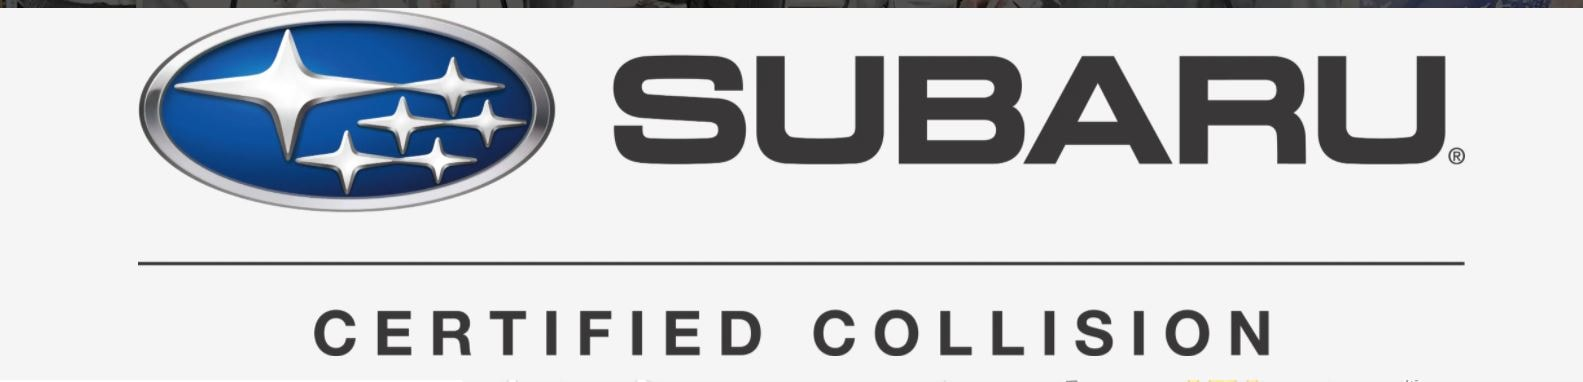 Subaru Certified Collision Center in Springfield, Missouri